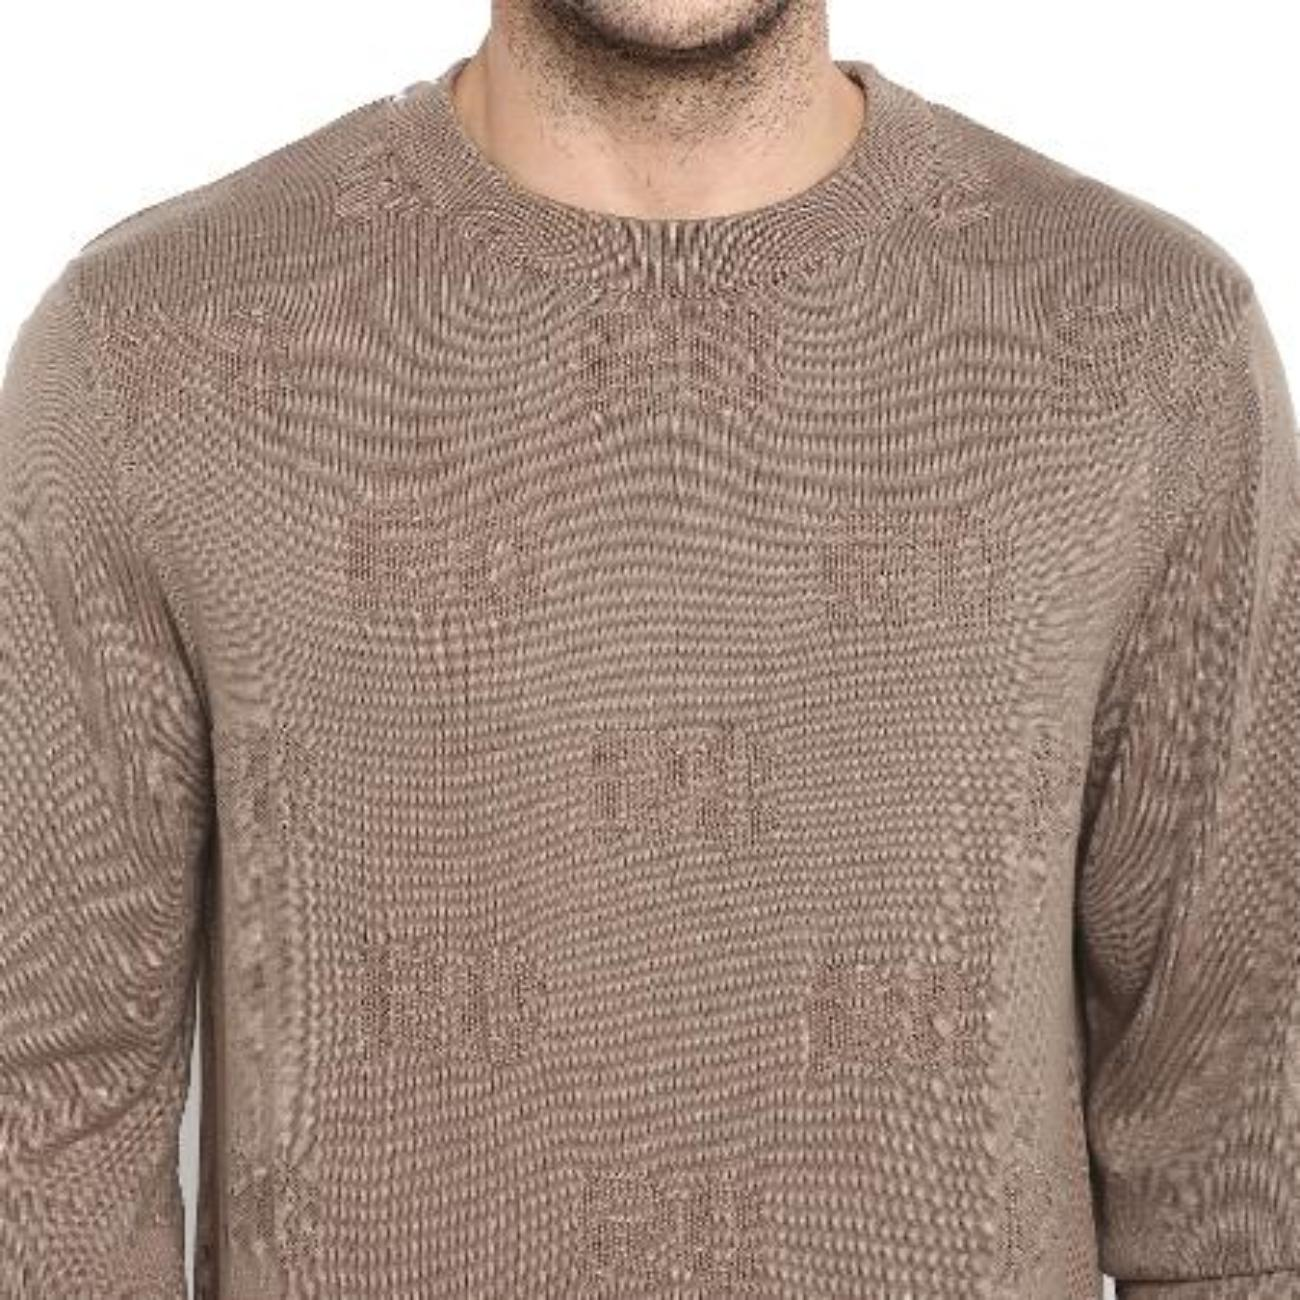 Brown Sweater from Red Chief